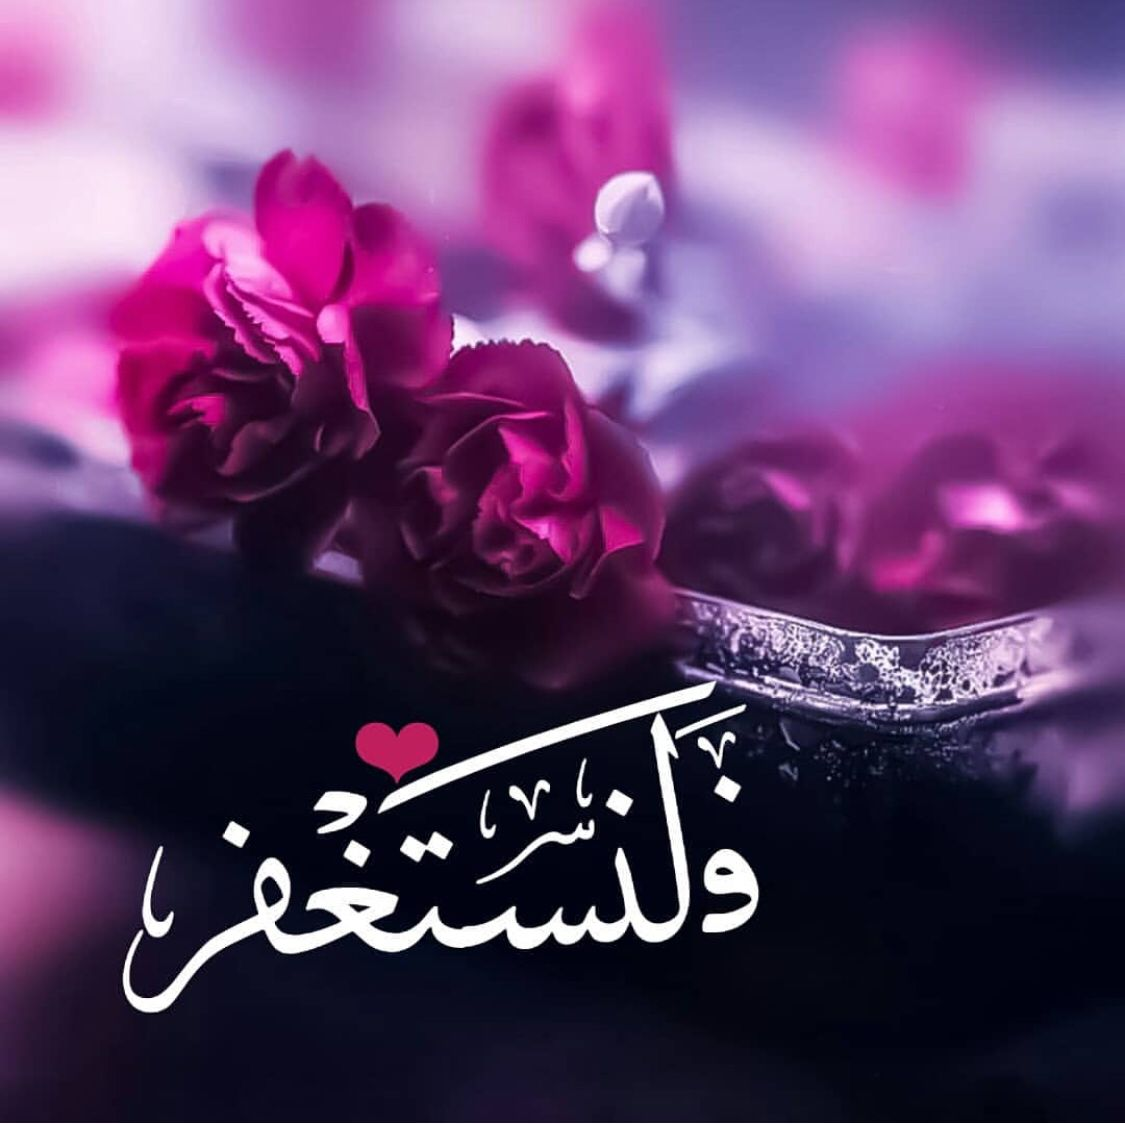 Pin By Zi Na On مواعظ خواطر إسلامية Beautiful Quran Quotes Beautiful Islamic Quotes Islamic Messages